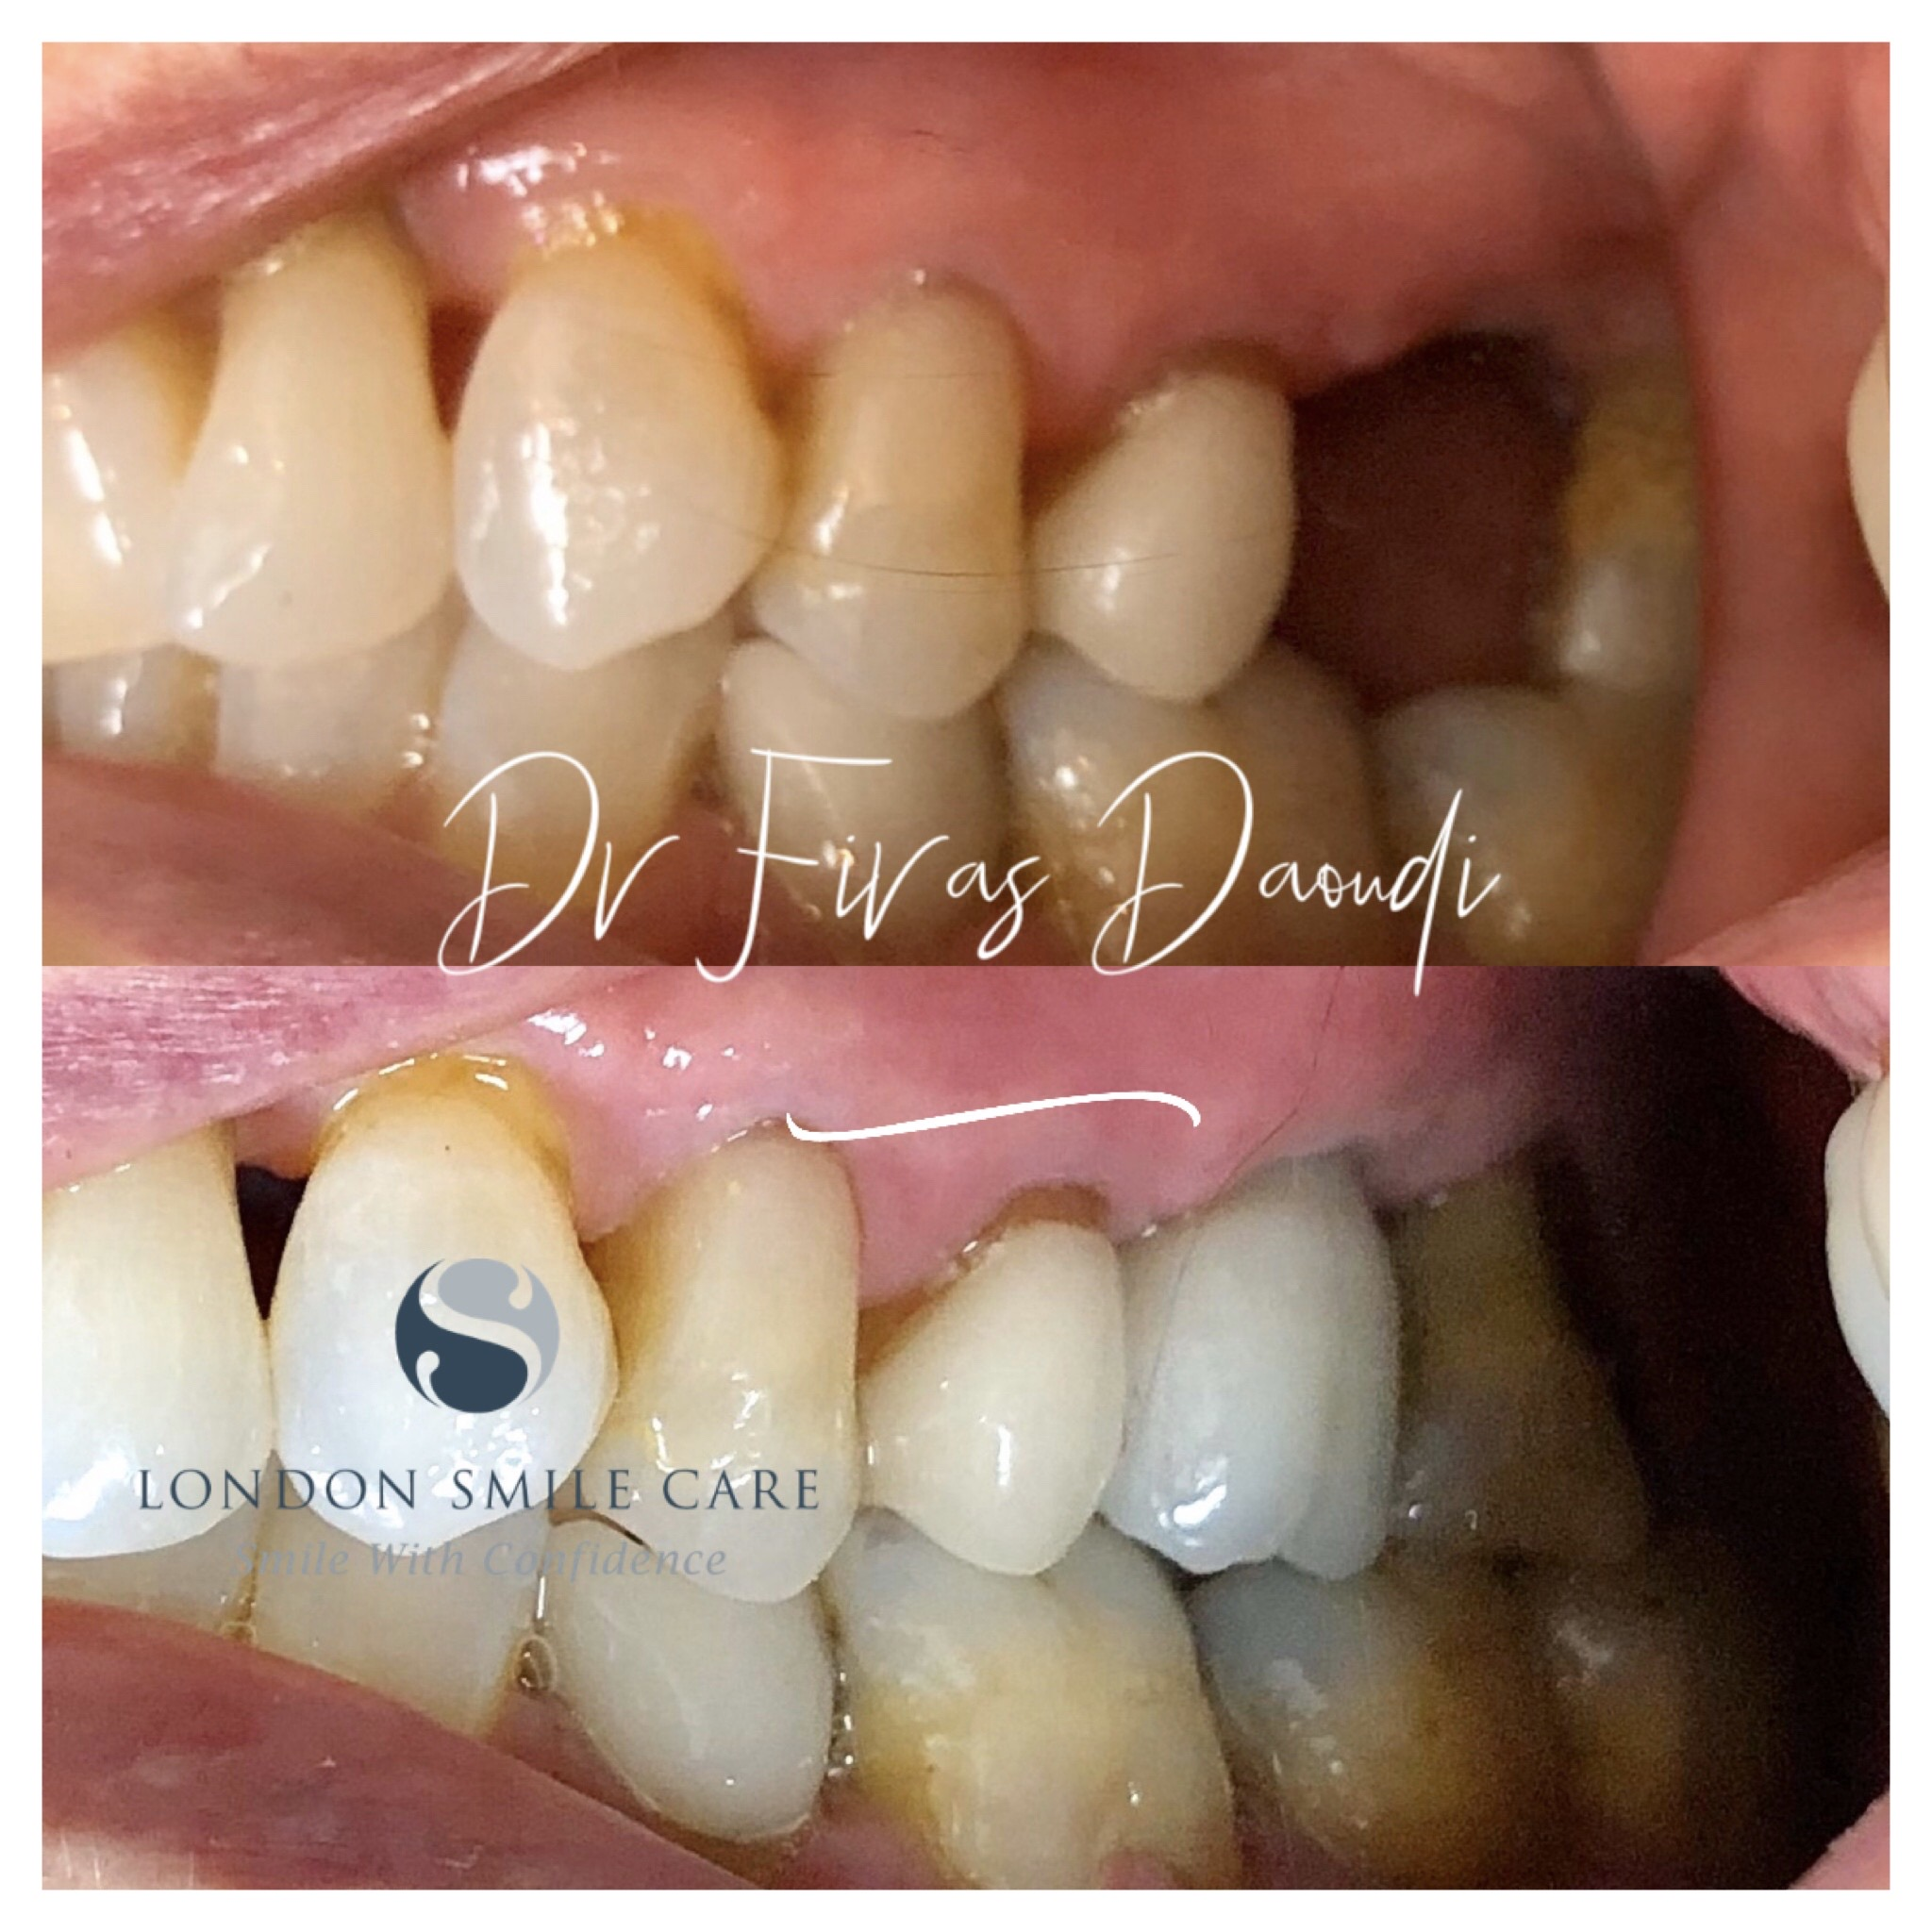 Am I A Good Candidate For Dental Implants?